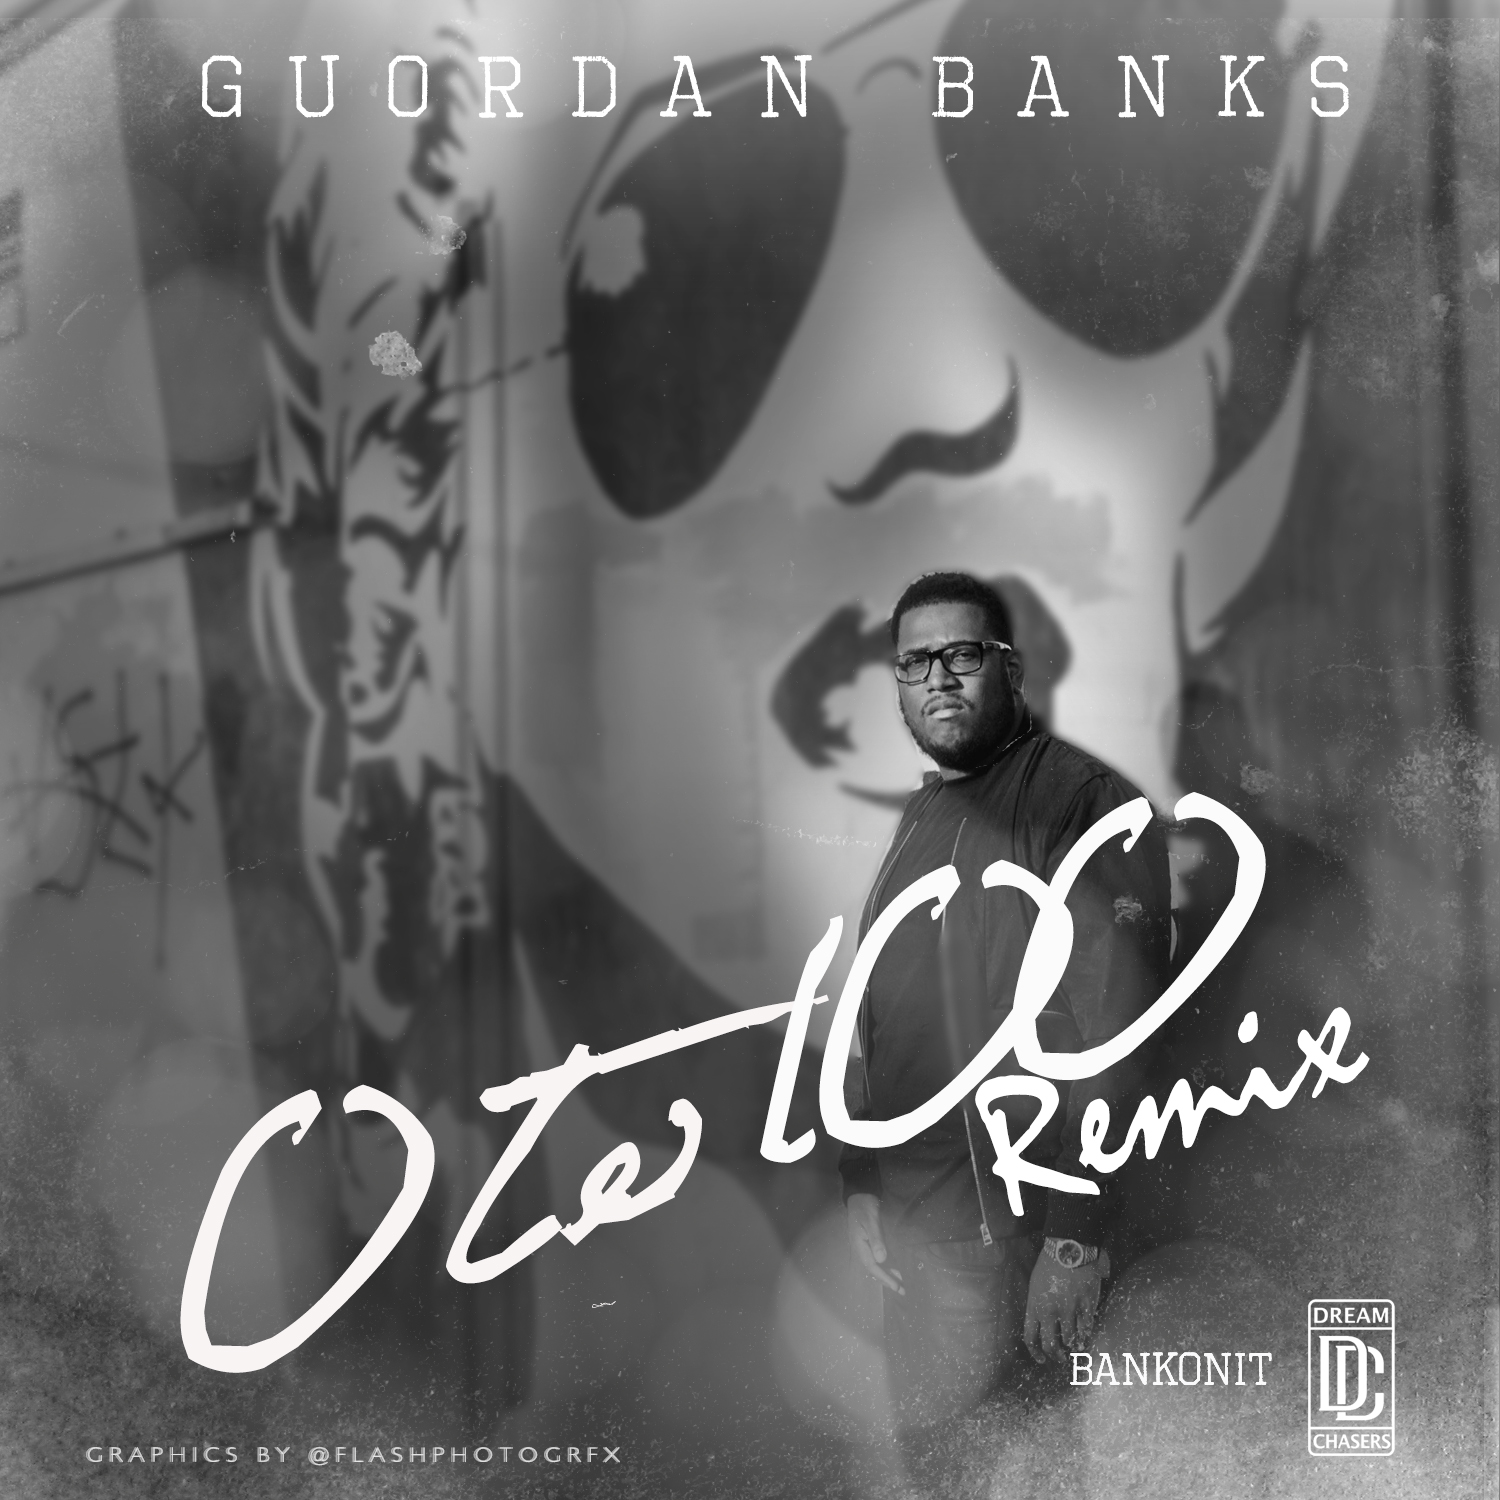 Guordan Banks 0 to 100 remix